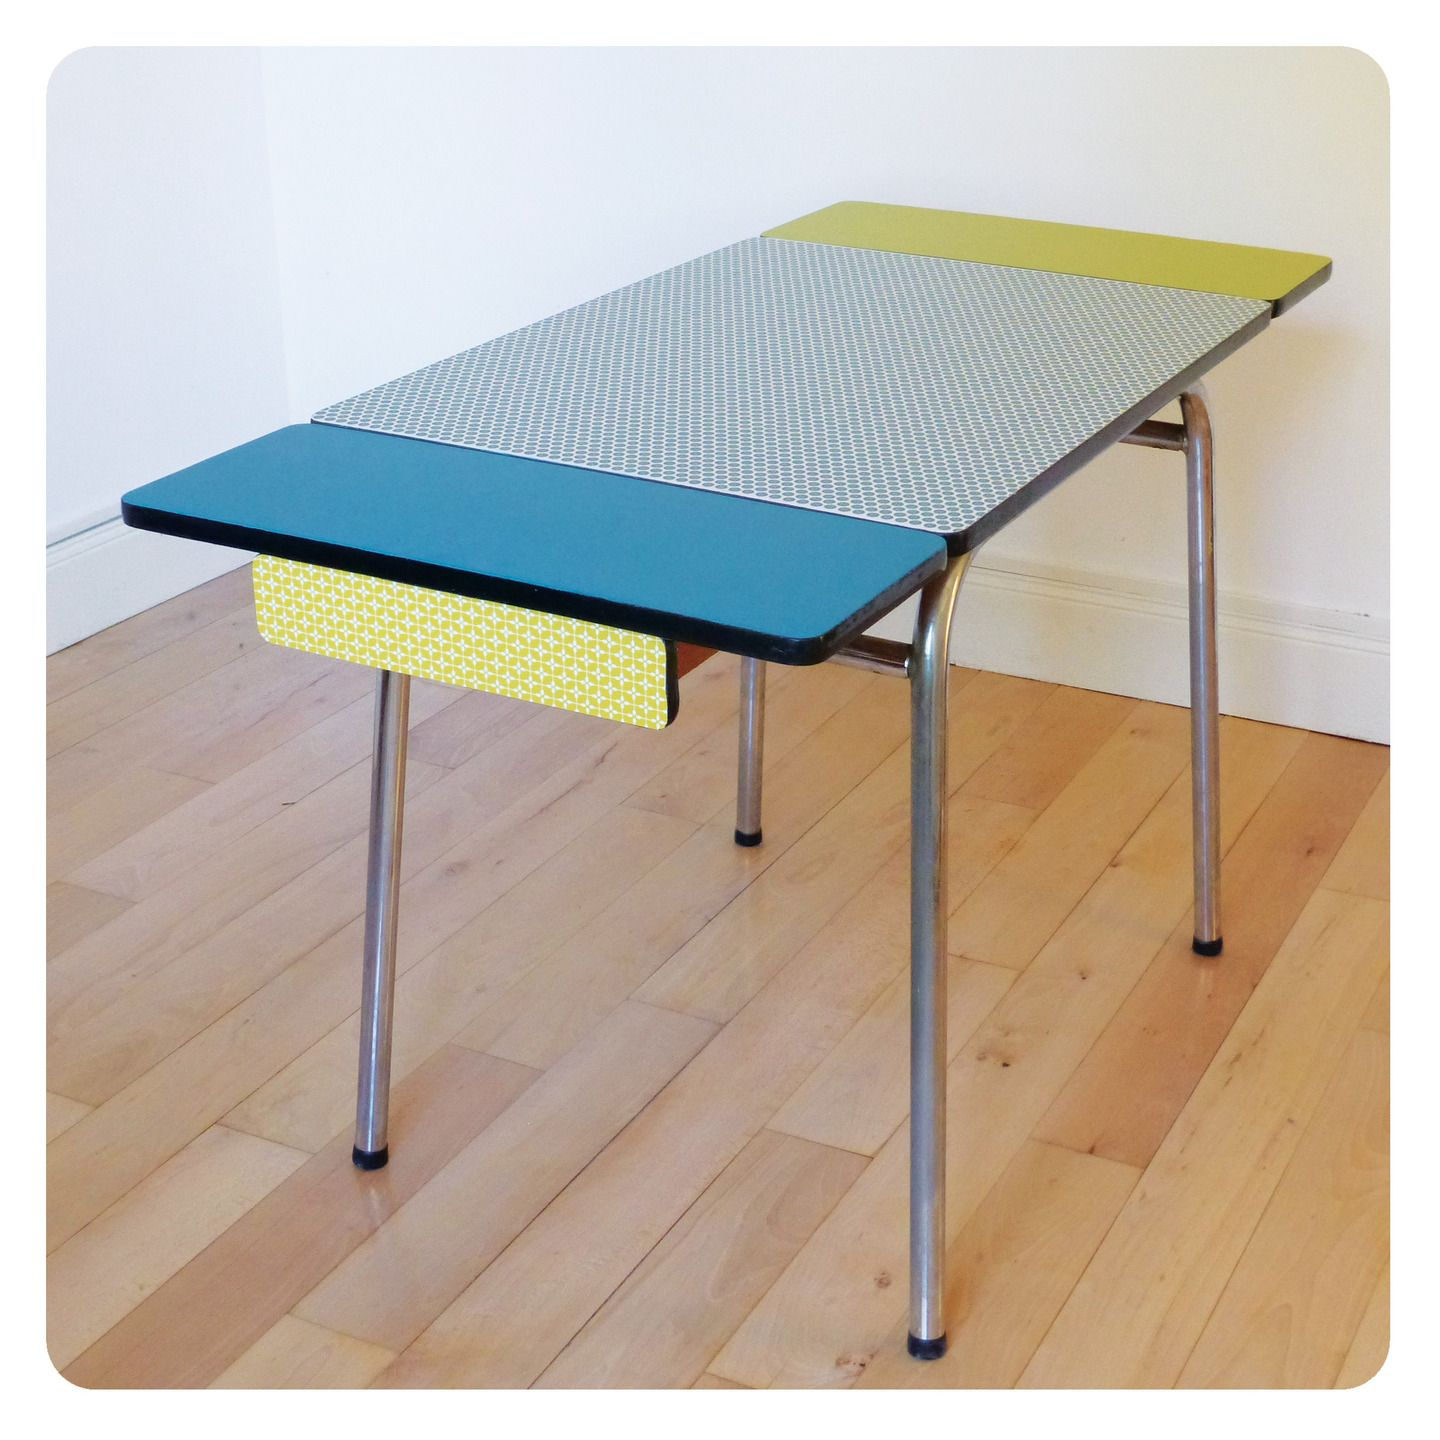 Table formica mobilier vintage revisit tout en couleur for Meuble en formica